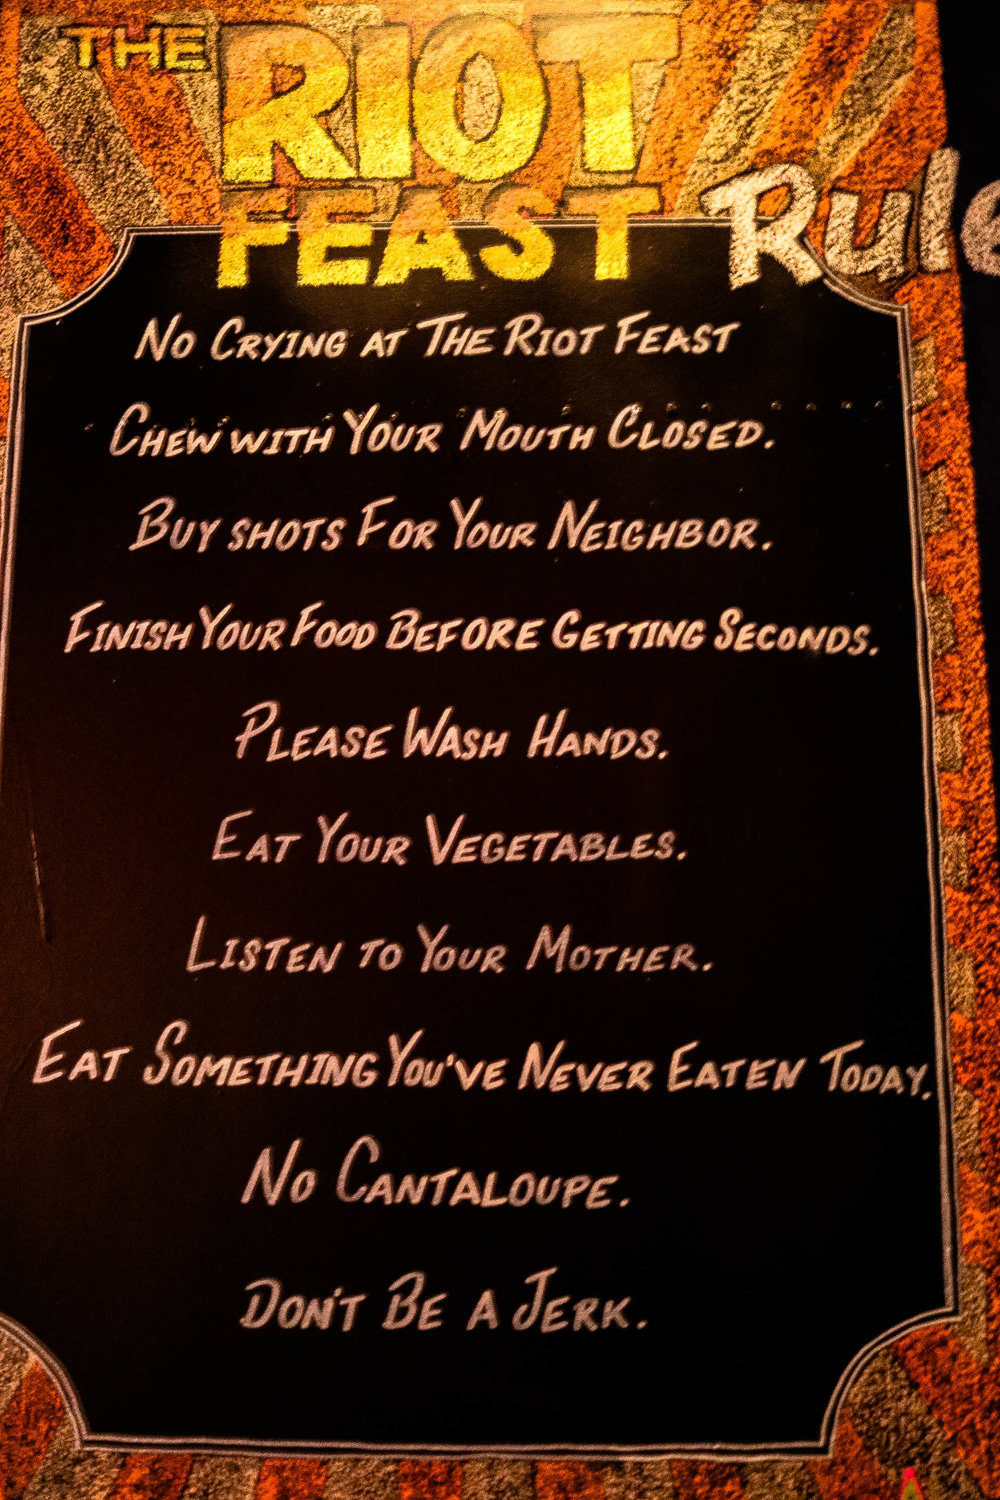 I'd say these are solid rules